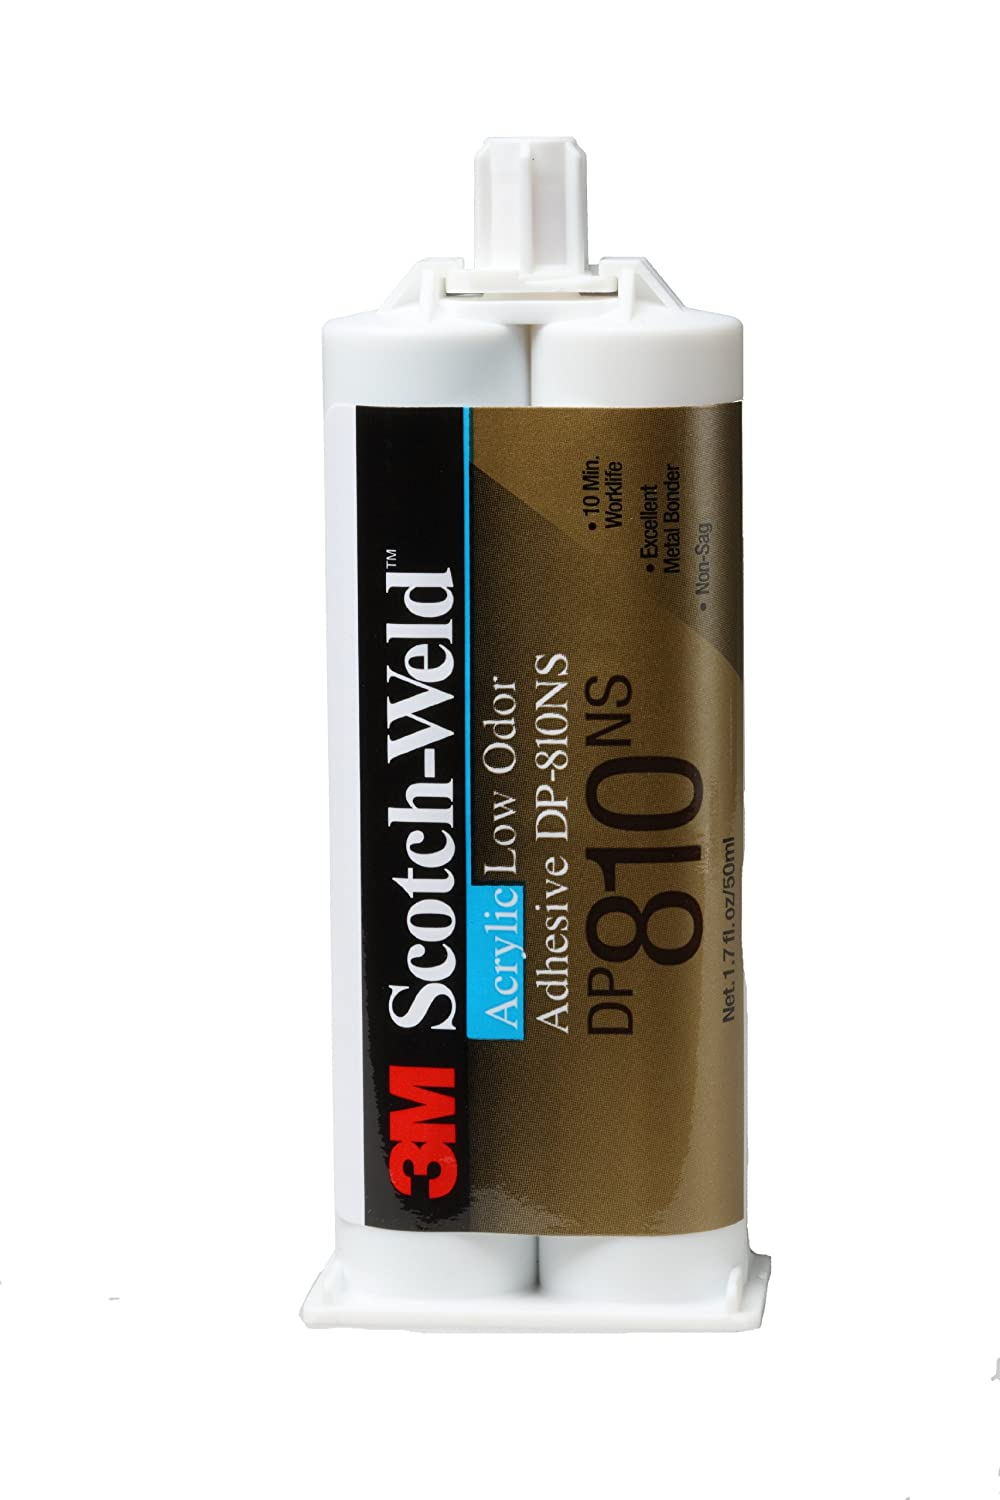 3M Scotch-Weld Low Odor Acrylic Adhesive DP810NS Tan, 1.7 fl oz/50 mL (Pack of 1)